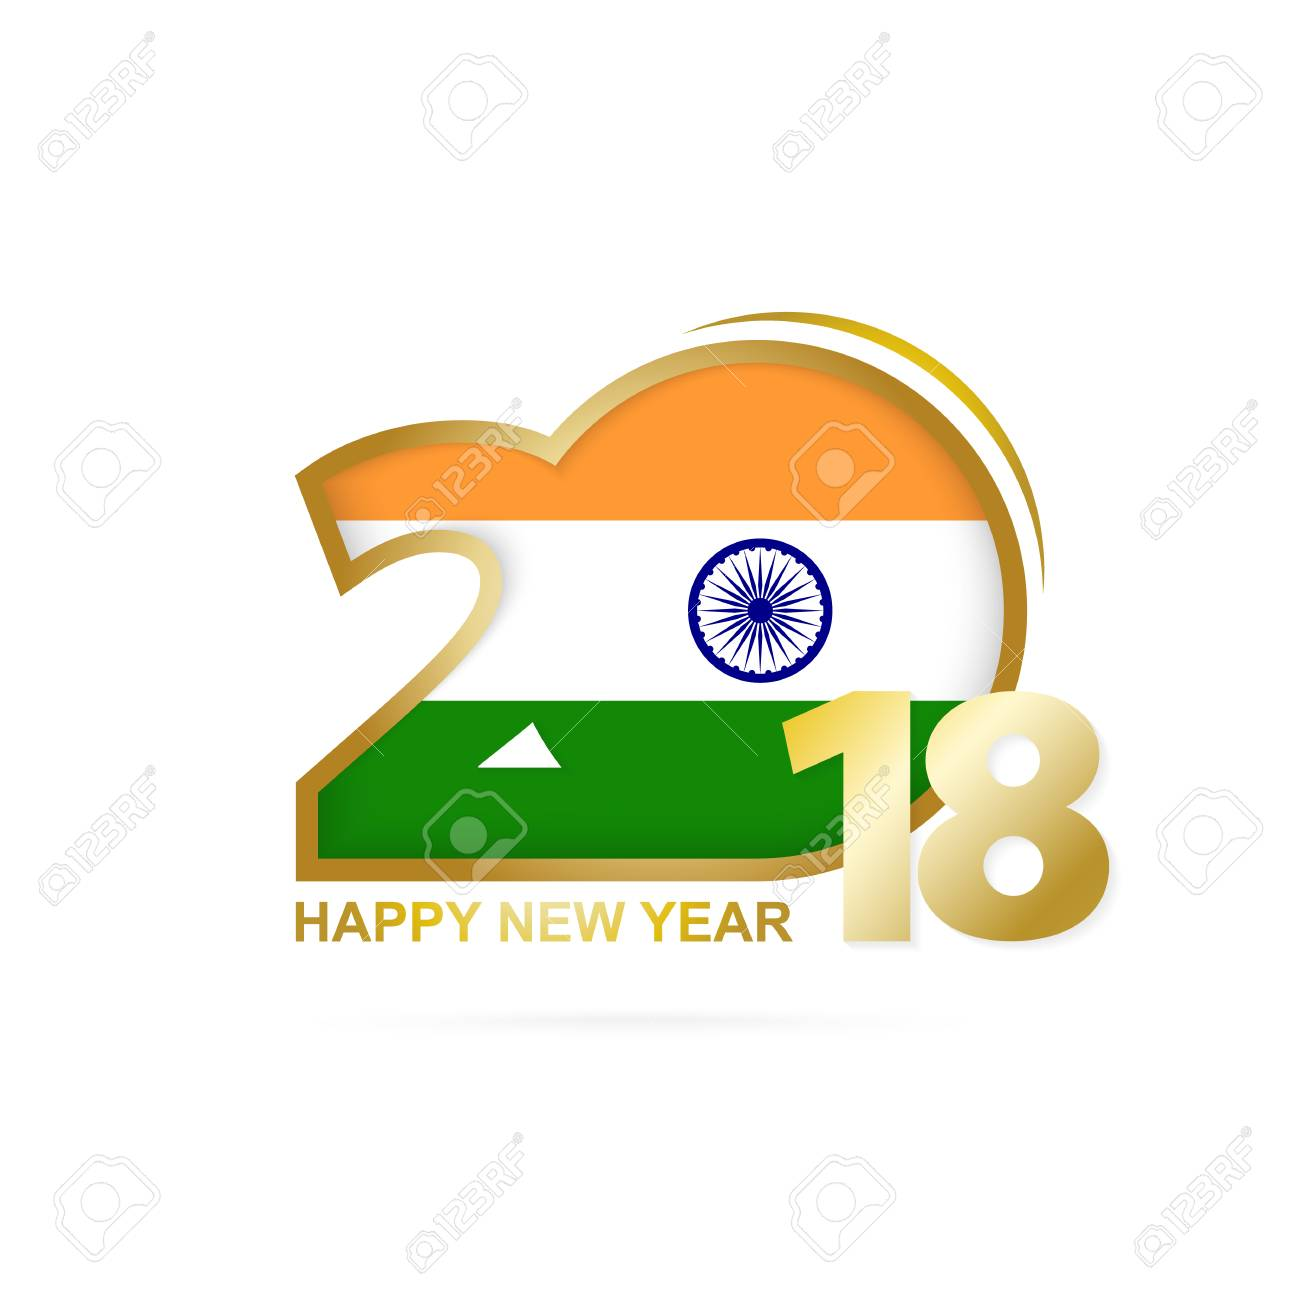 vector year 2018 with india flag pattern happy new year design vector illustration